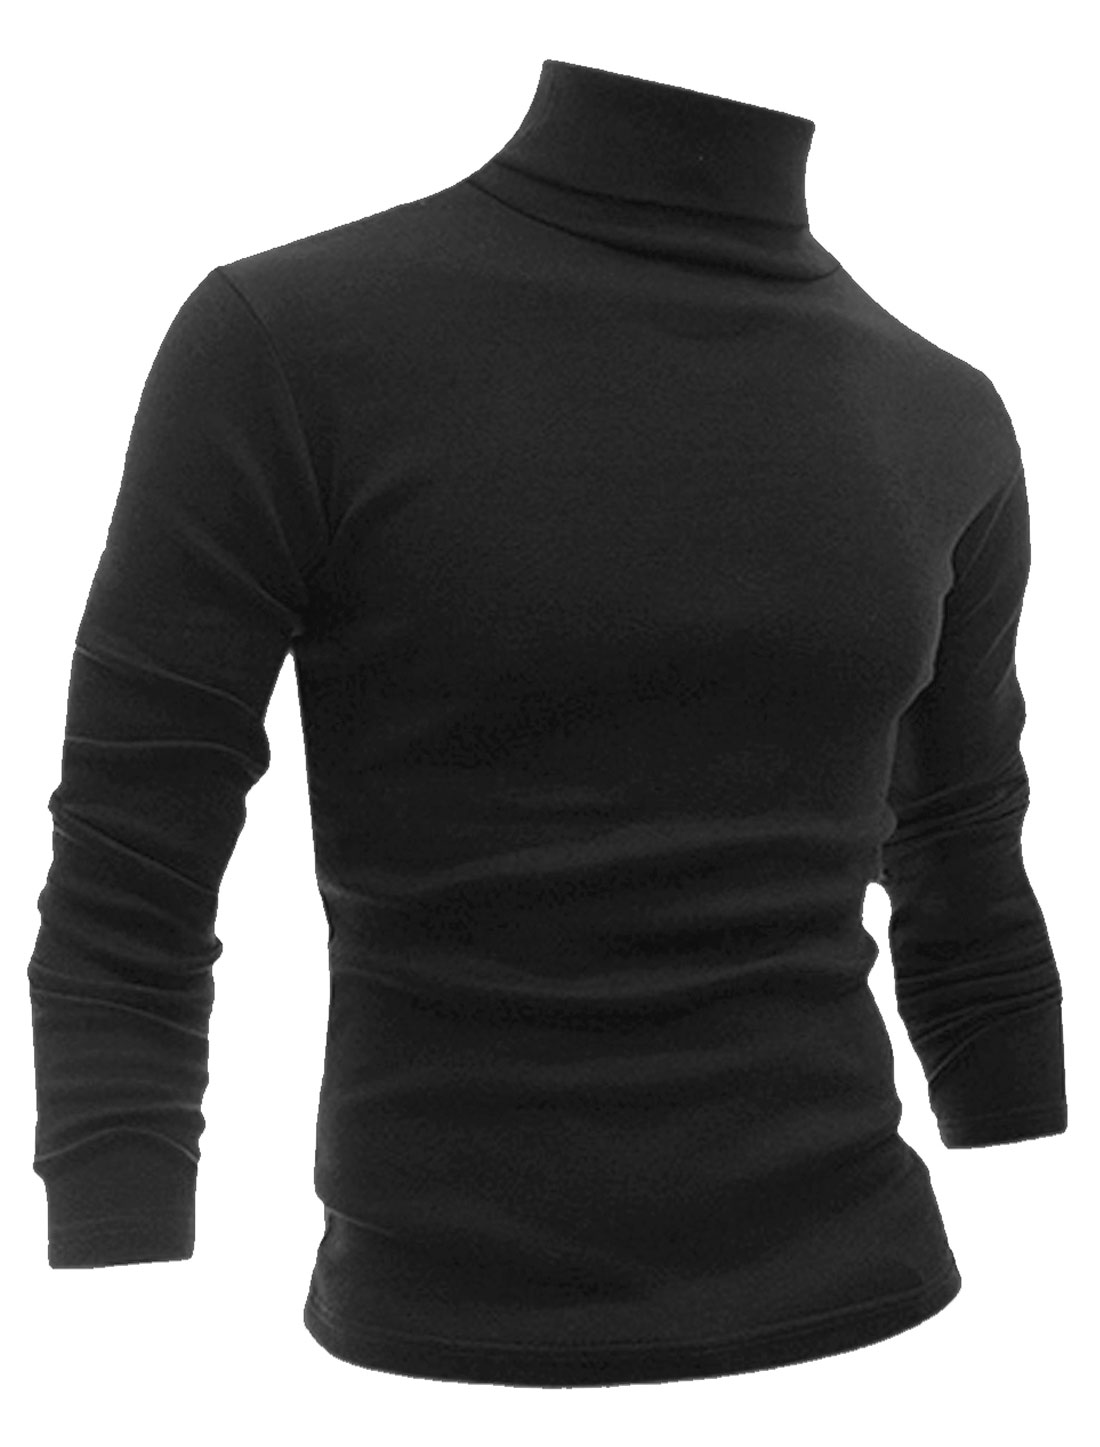 Man Long Sleeve Turtle Neck Slim Fit Casual T-shirt Black S